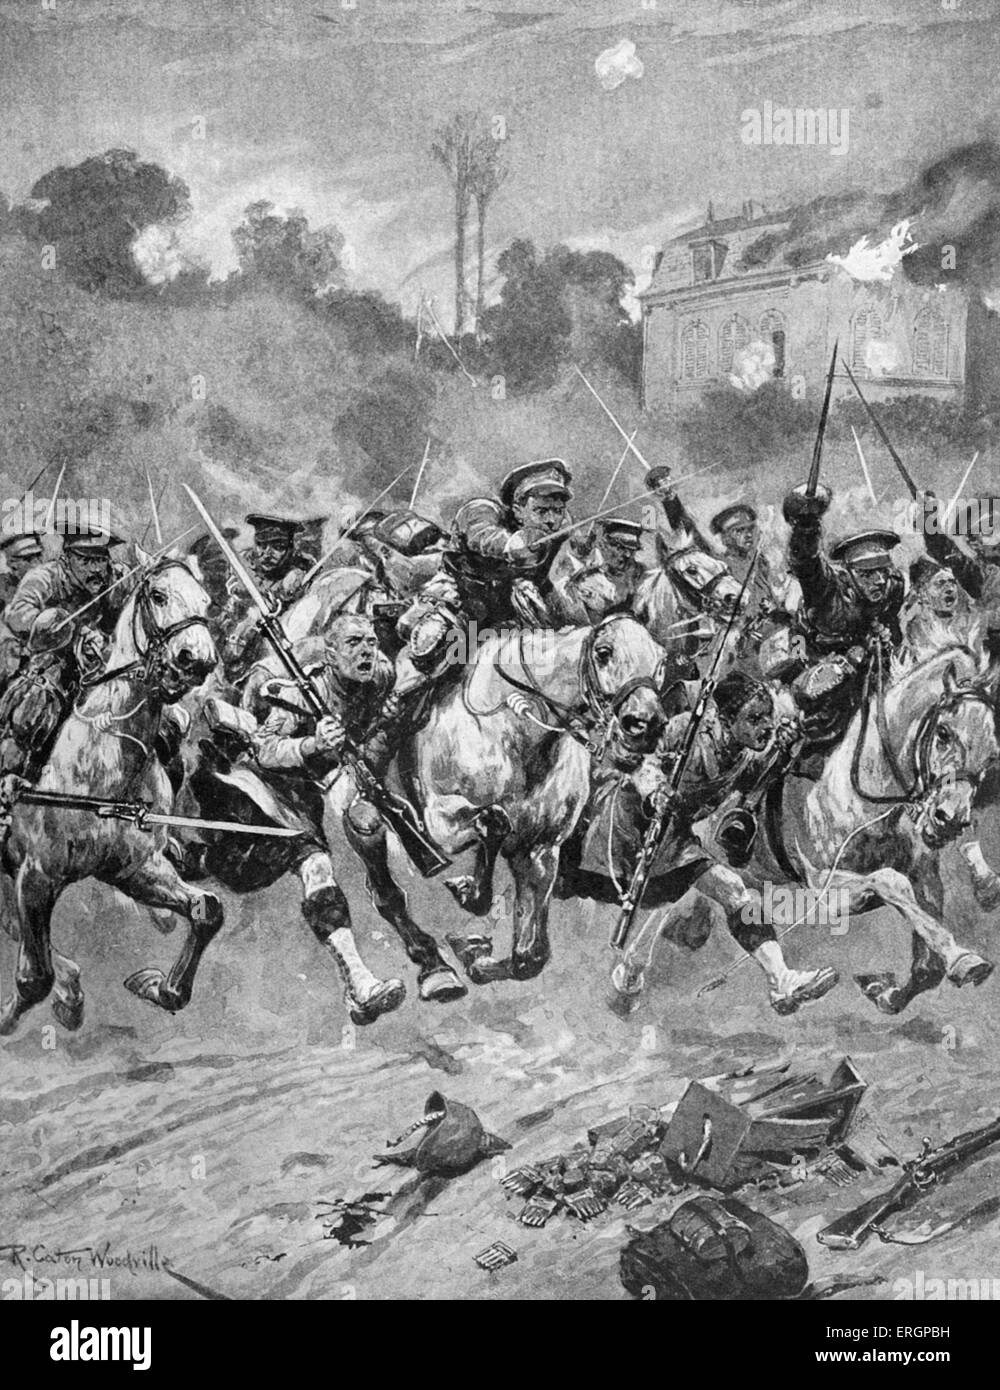 Battle of St Quentin, France. 'Stirrup charge' of the Royal Scots Grey and the Highlanders, 30 August 1914. - Stock Image